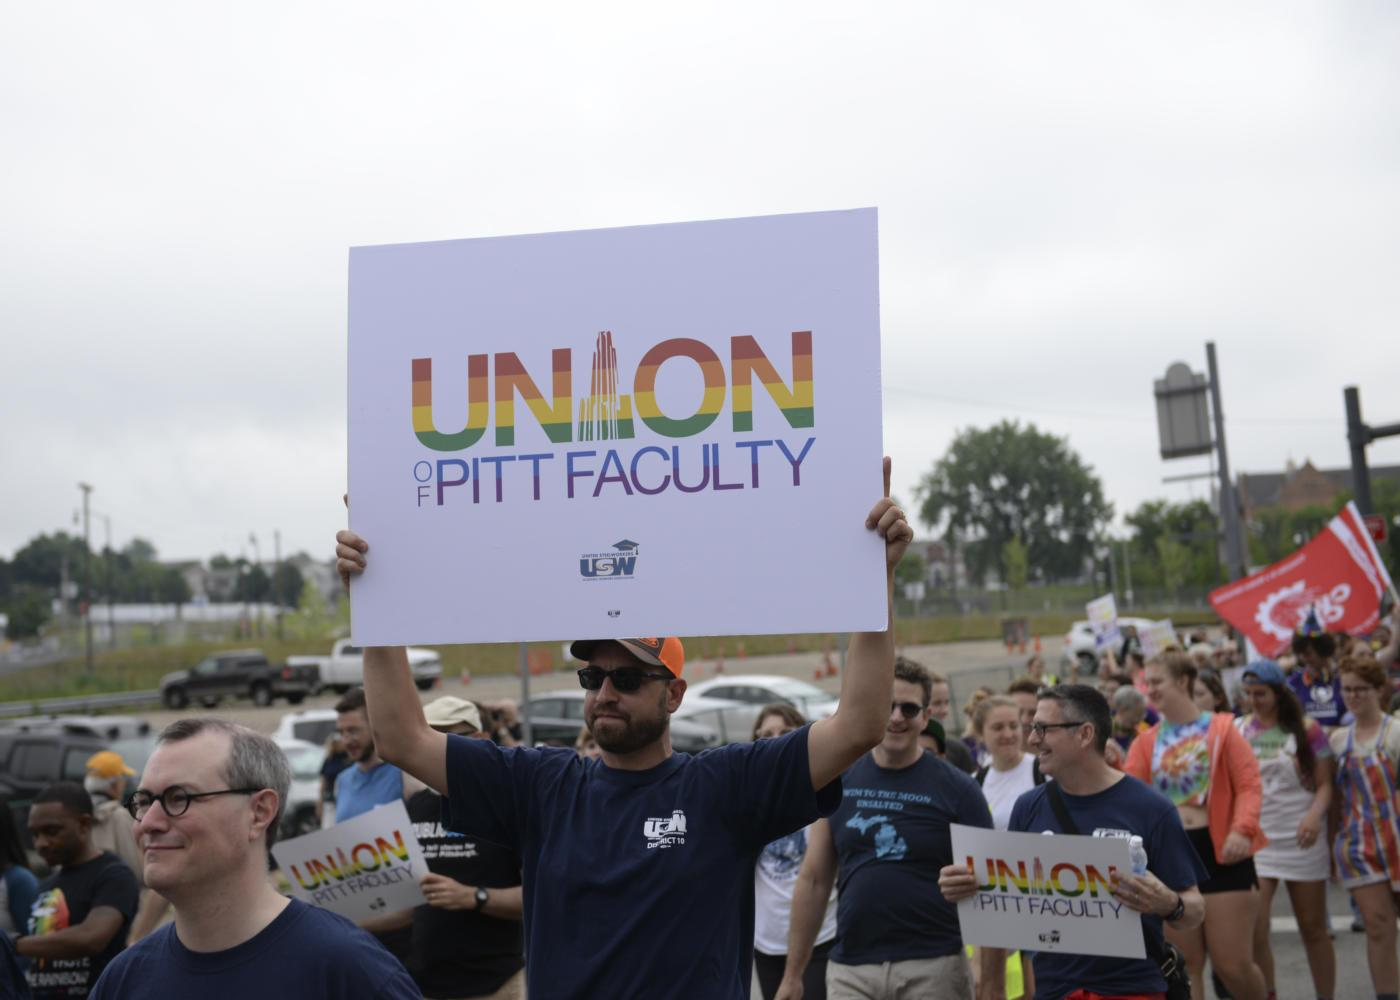 University of Pittsburgh faculty unionizers make an appearance at the People's Pride parade in June 2018. (Photo by Jon Kunitsky | Staff Photographer)